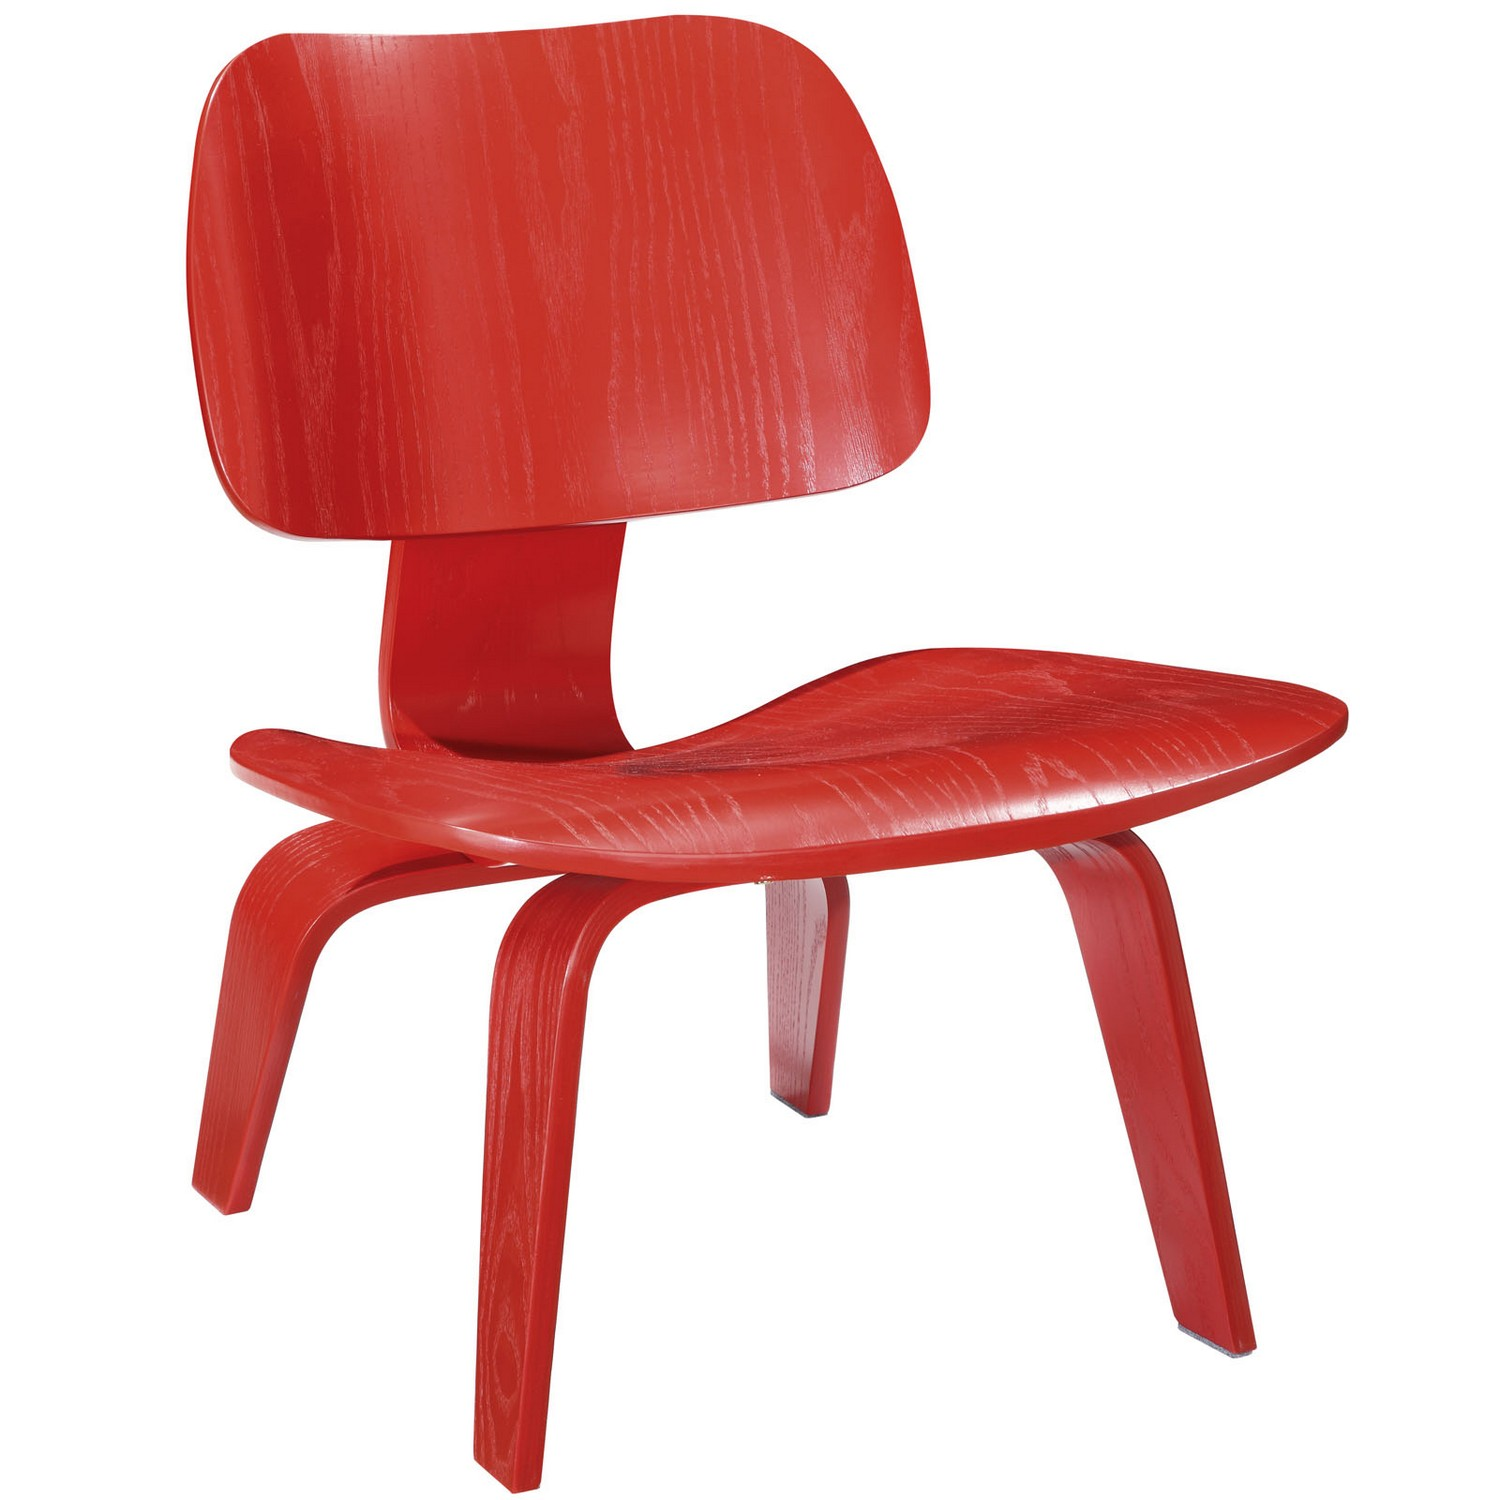 Modway Fathom Lounge Chair - Red